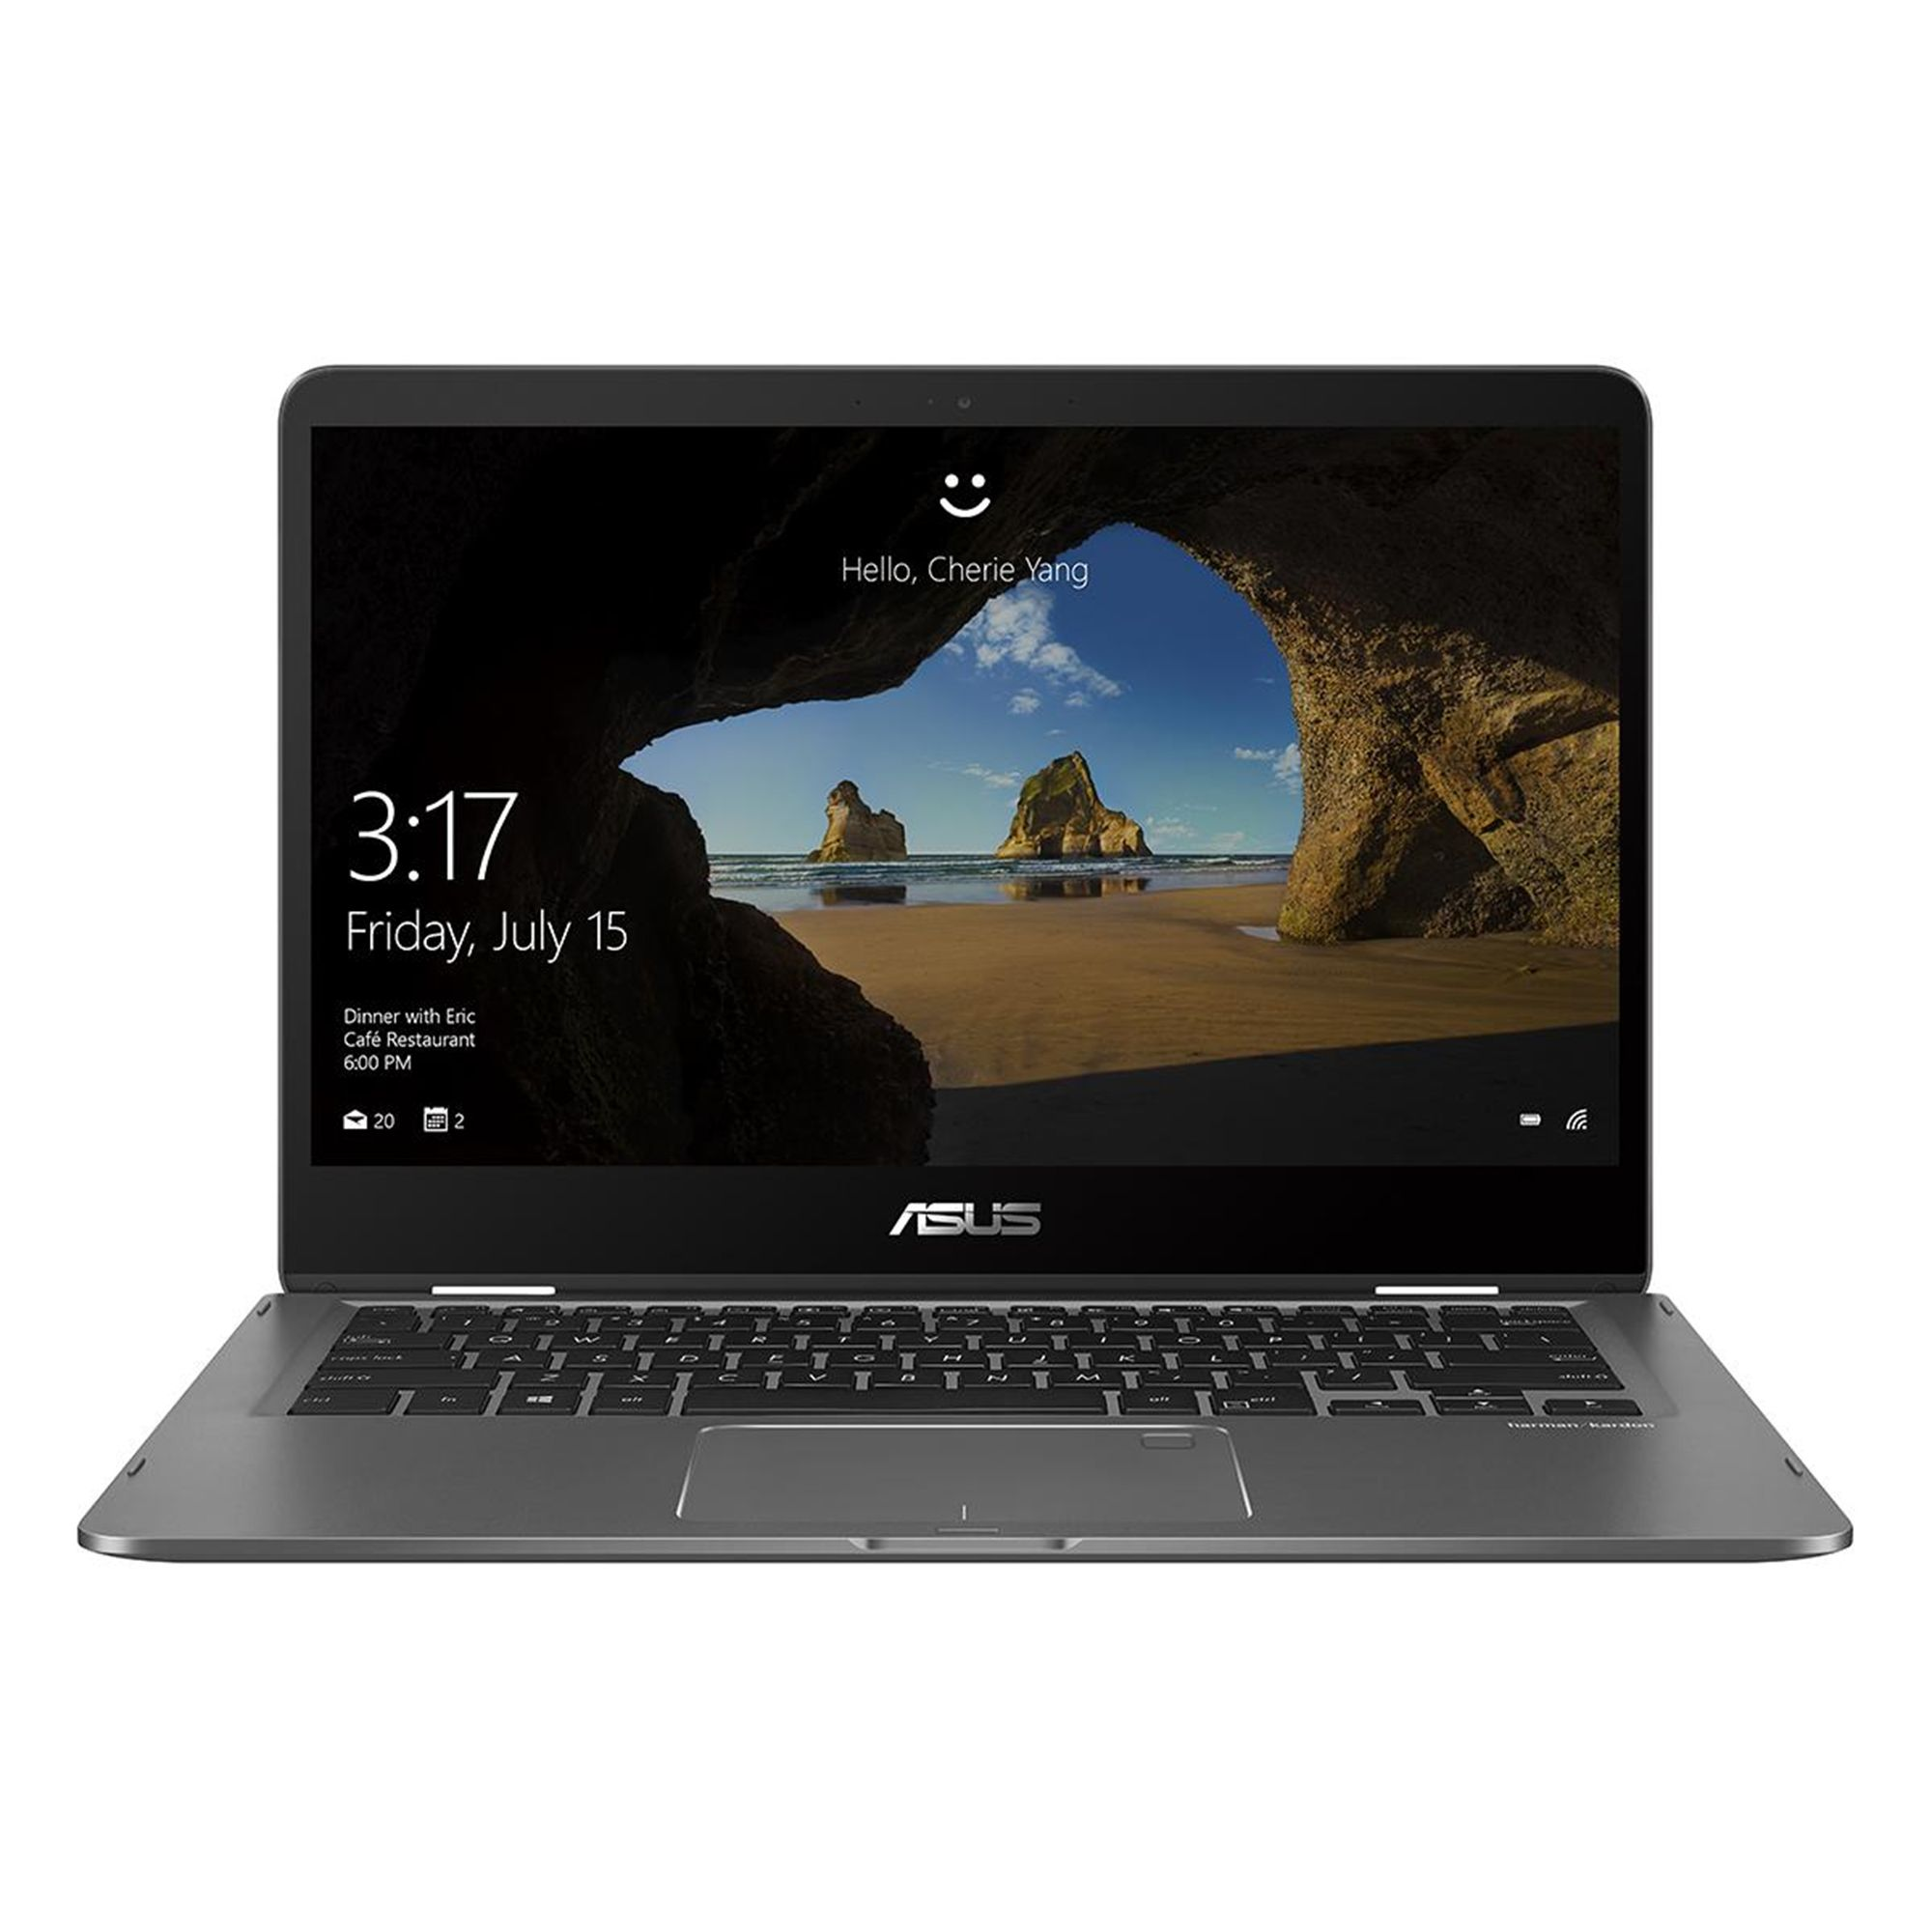 Ultrabook Asus ZenBook UX461UA 14 Full HD Touch Intel Core i5-8250U RAM 8GB SSD 256GB Windows 10 Pro Gri